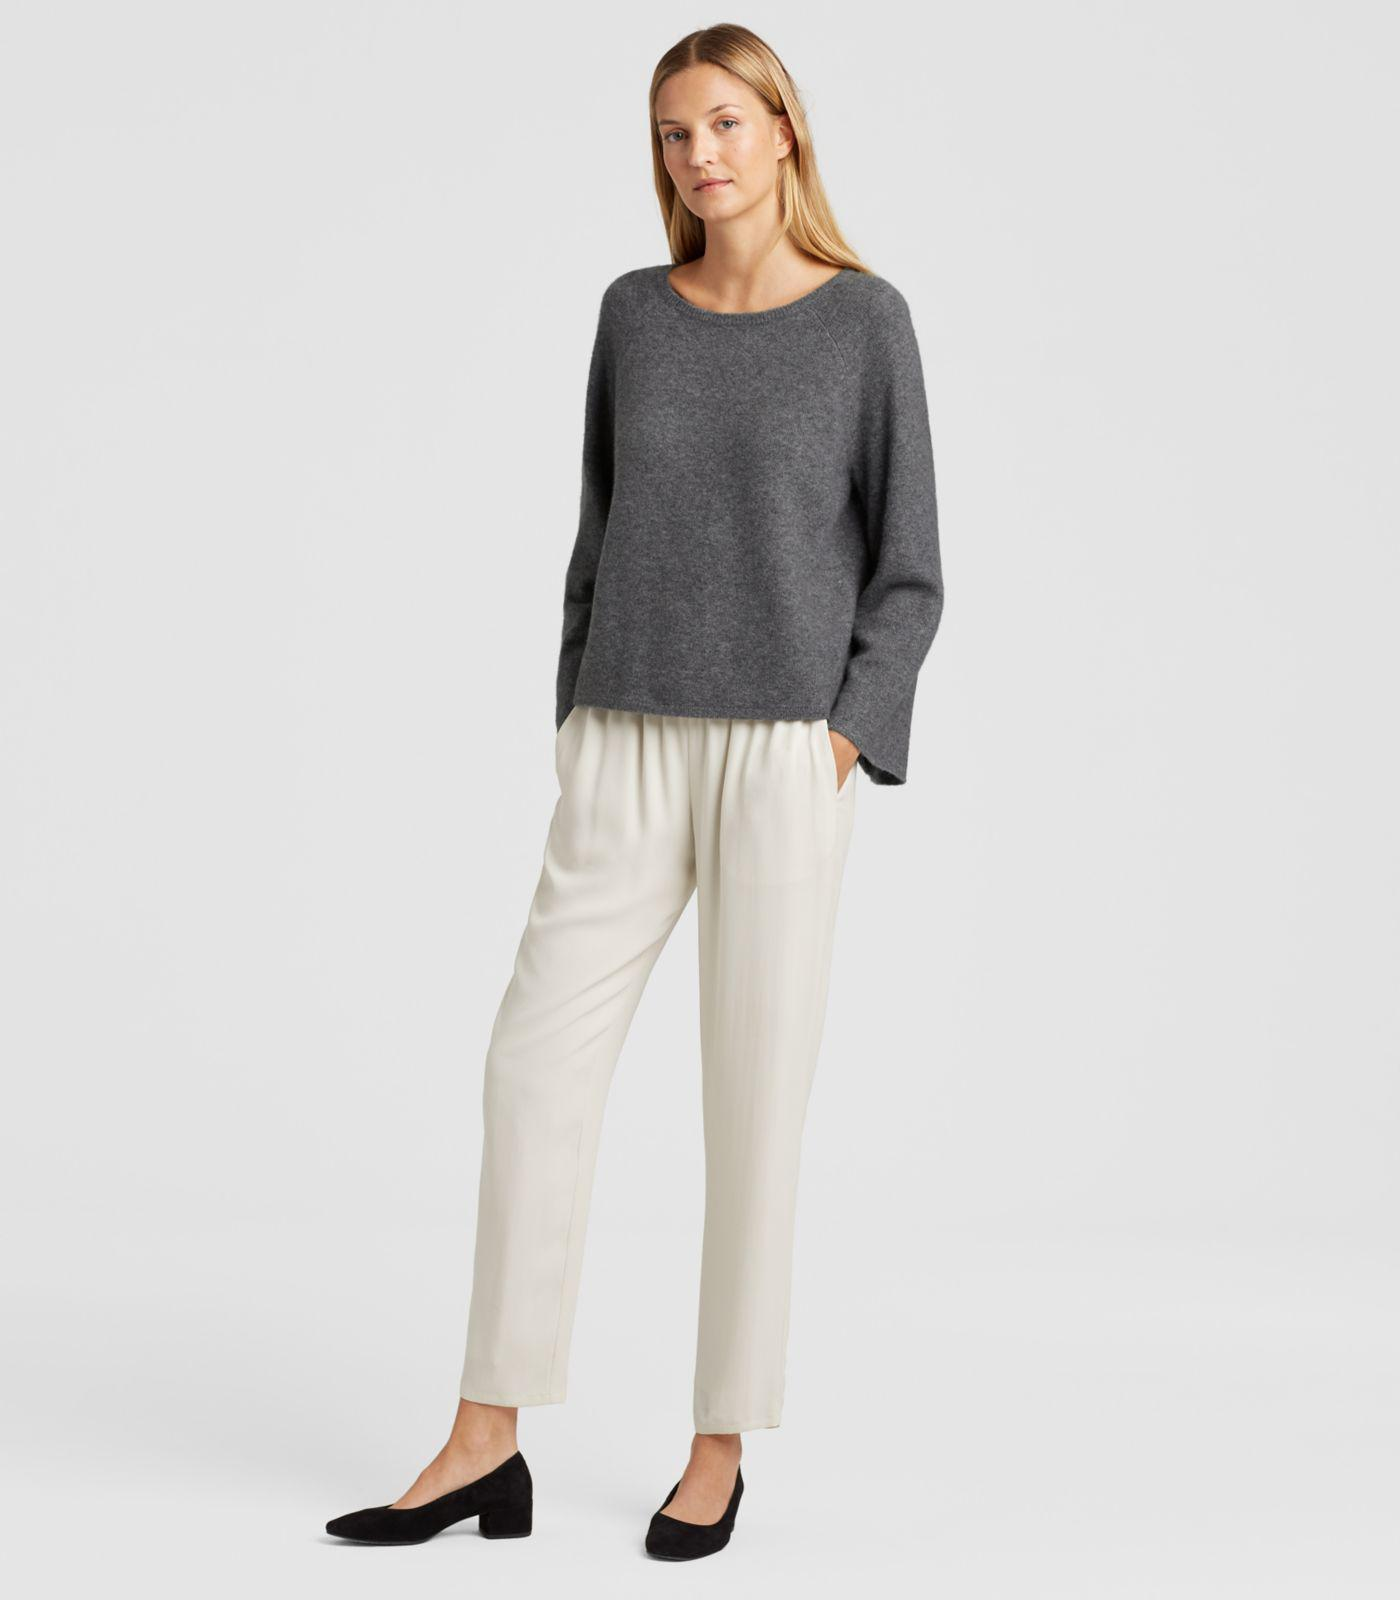 92033bf6fac254 Lyst - Eileen Fisher Cashmere Silk Bell-sleeve Top in Gray